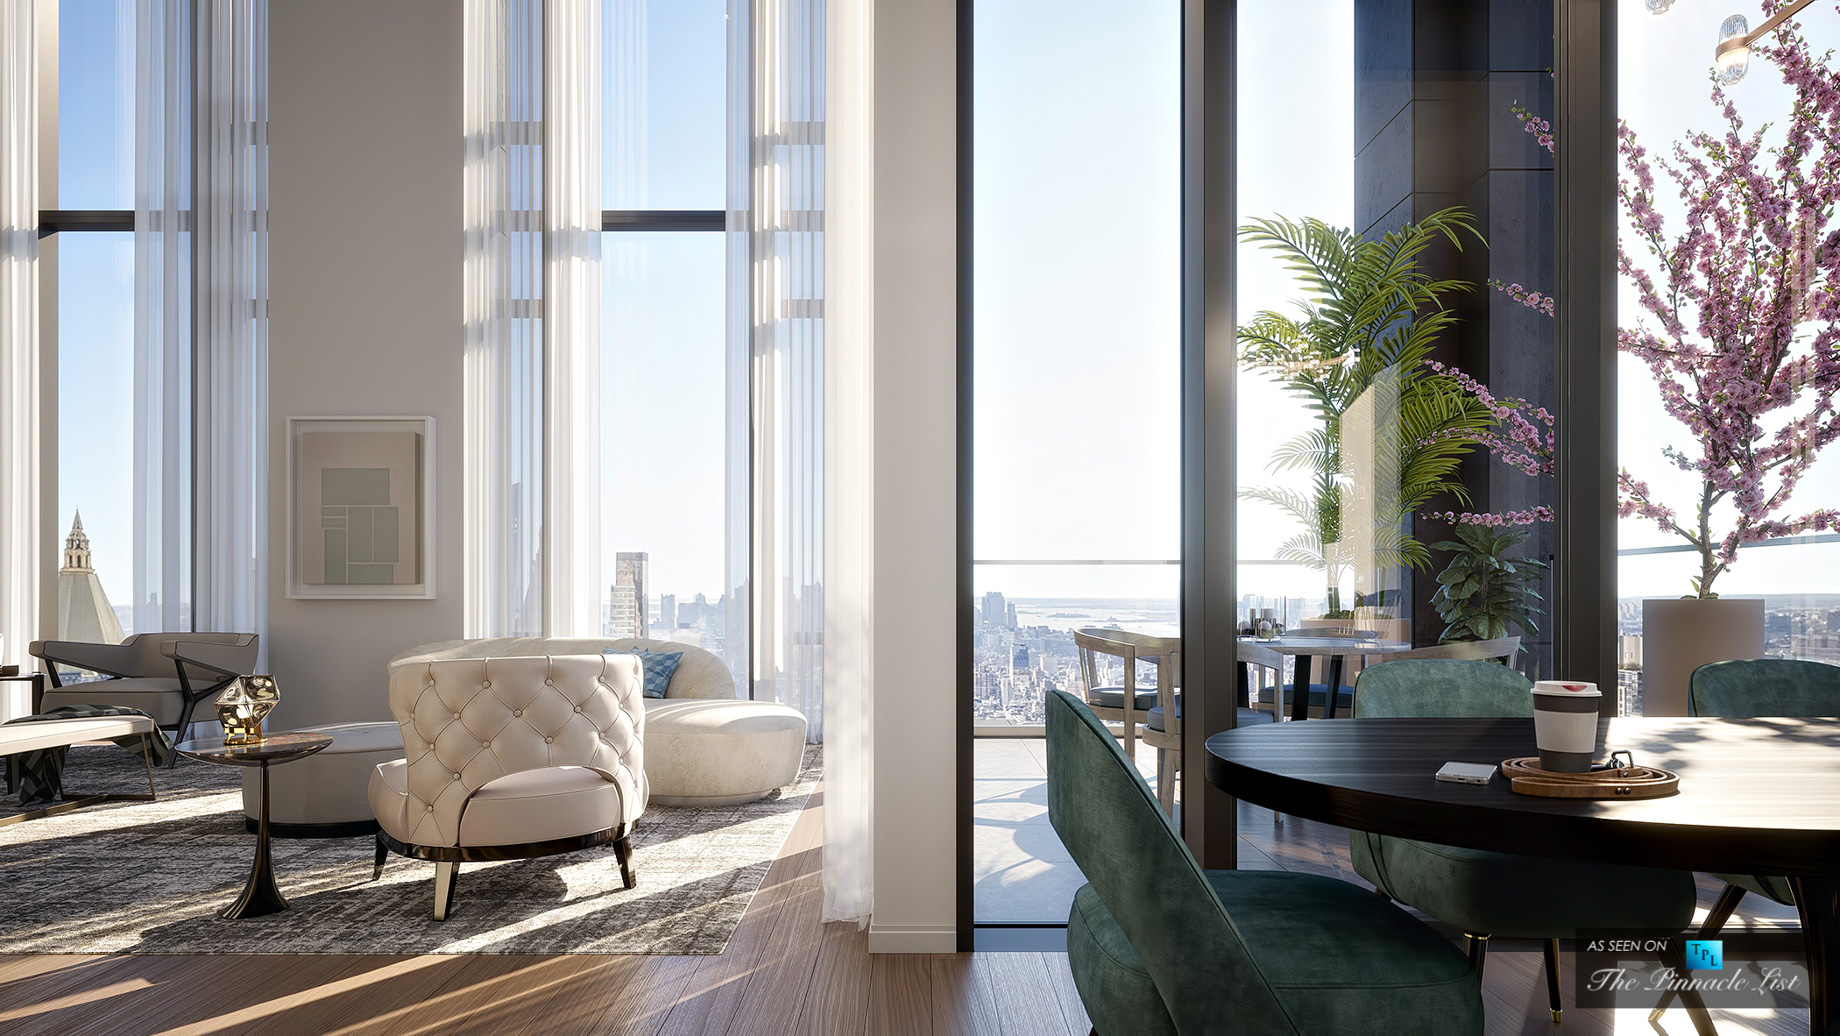 Luxury Real Estate Five Of The World S Most Famous Interior Designers The Pinnacle List